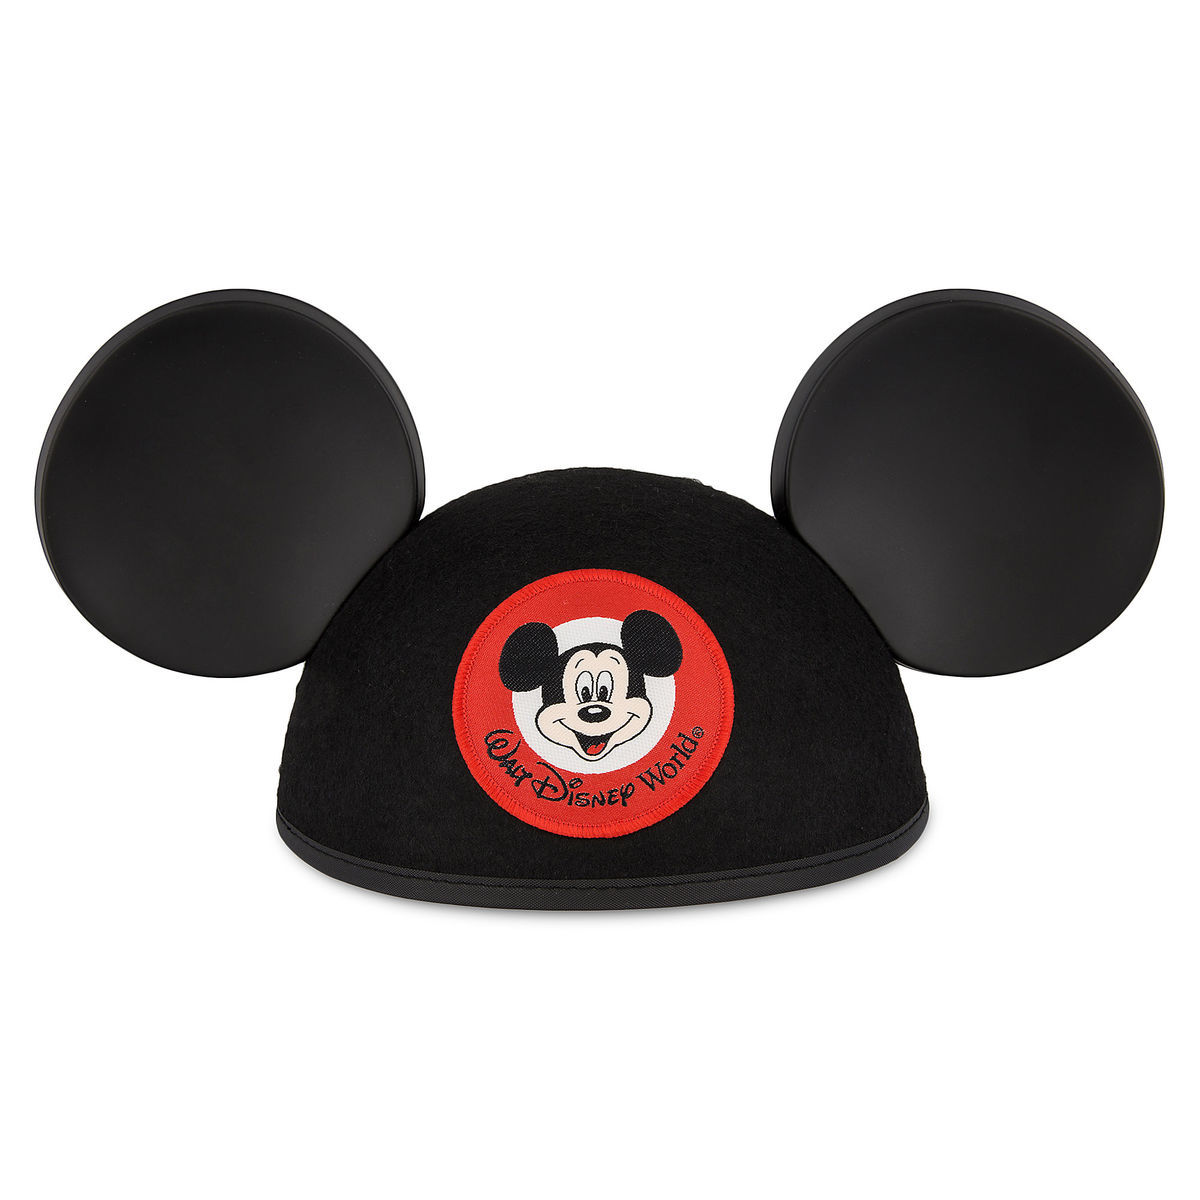 Disney Hat - Ears Hat - Mickey Mouse Club - Infant